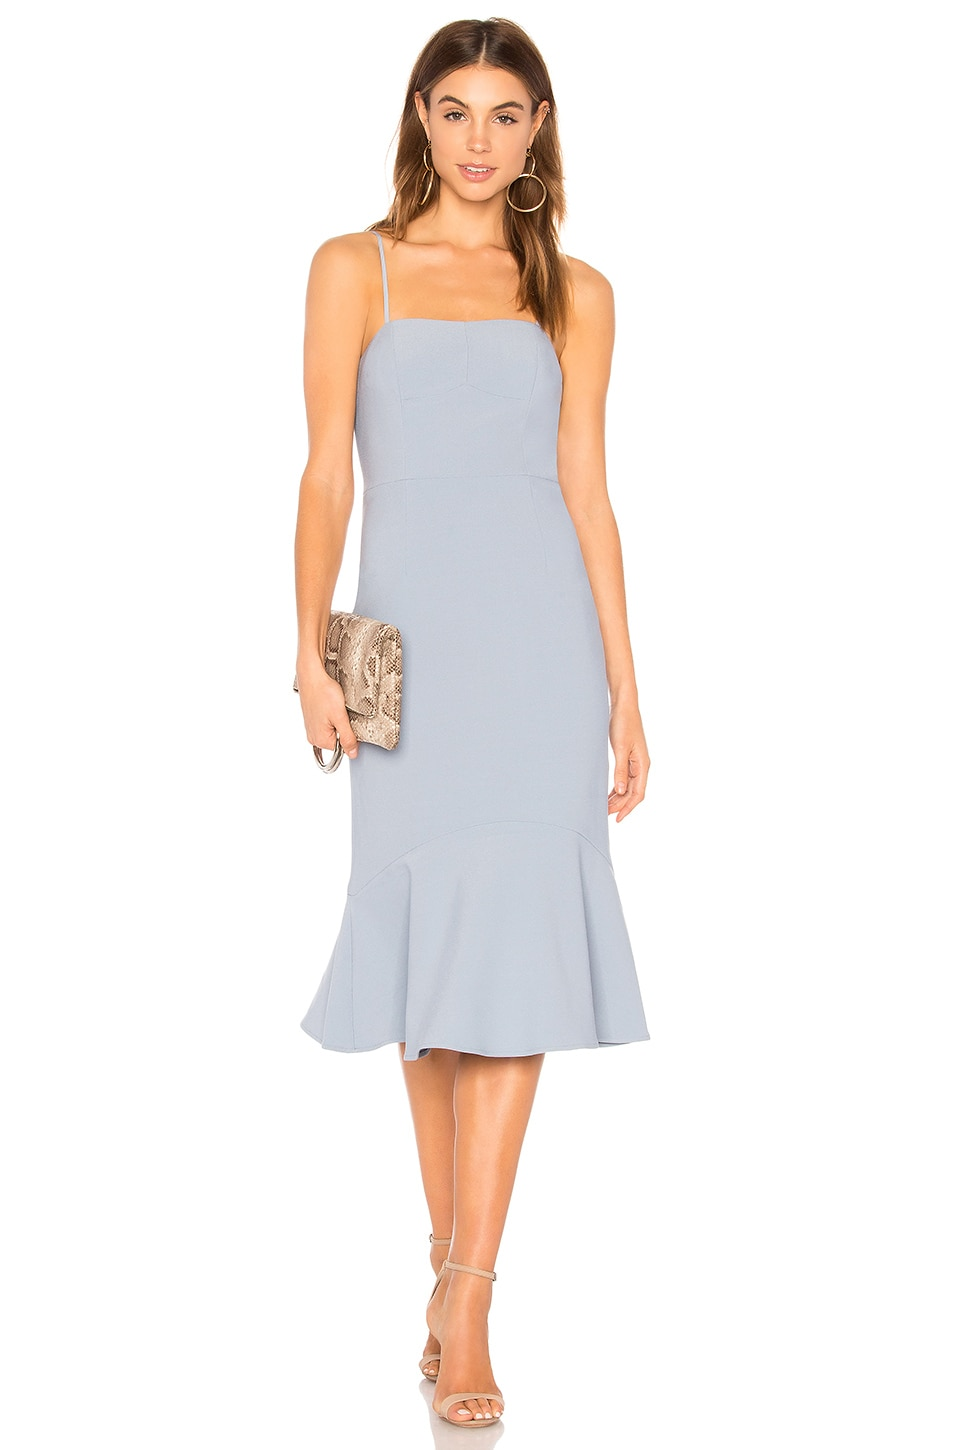 Finders Keepers Continuum Midi Dress in Laguna